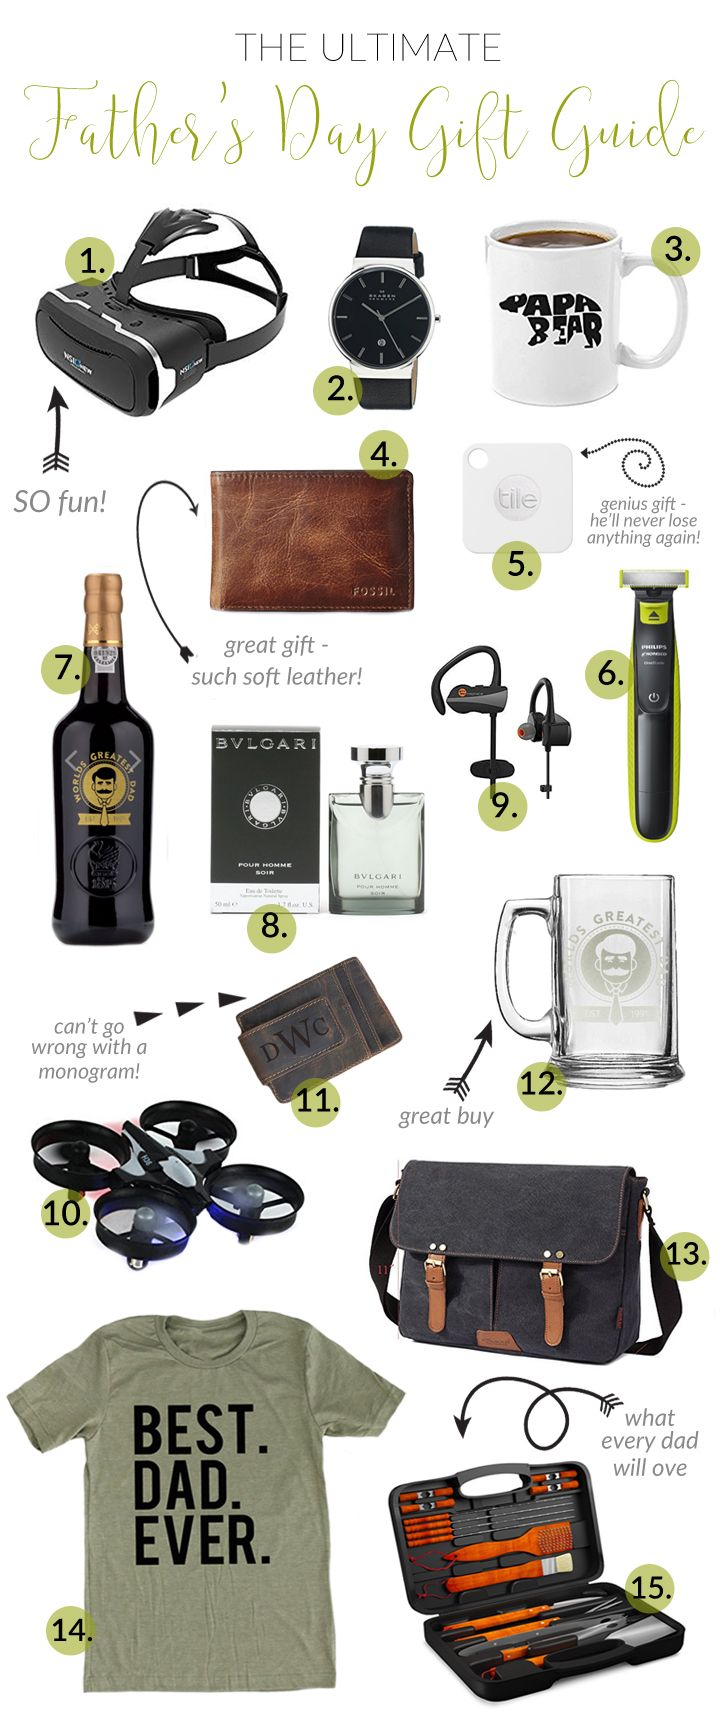 Easy Gift Ideas for Father's Day! There's something for EVERY Dad on this list!